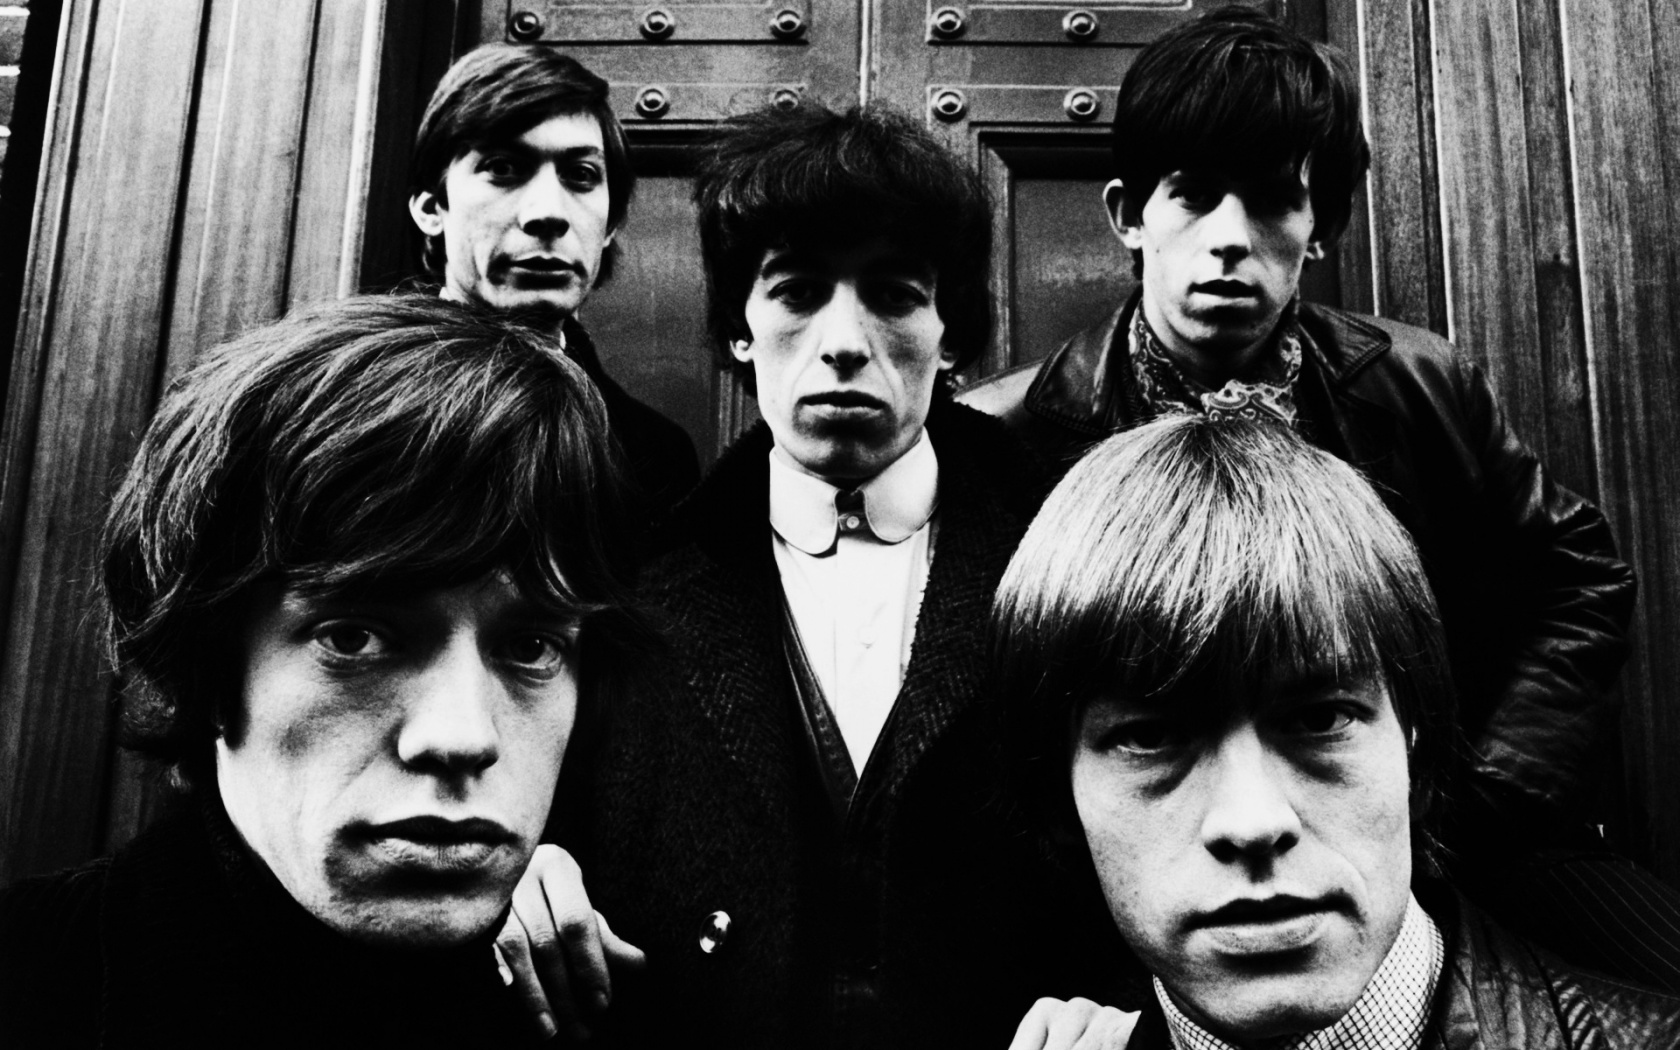 mick jagger Rolling Stones HD Wallpaper